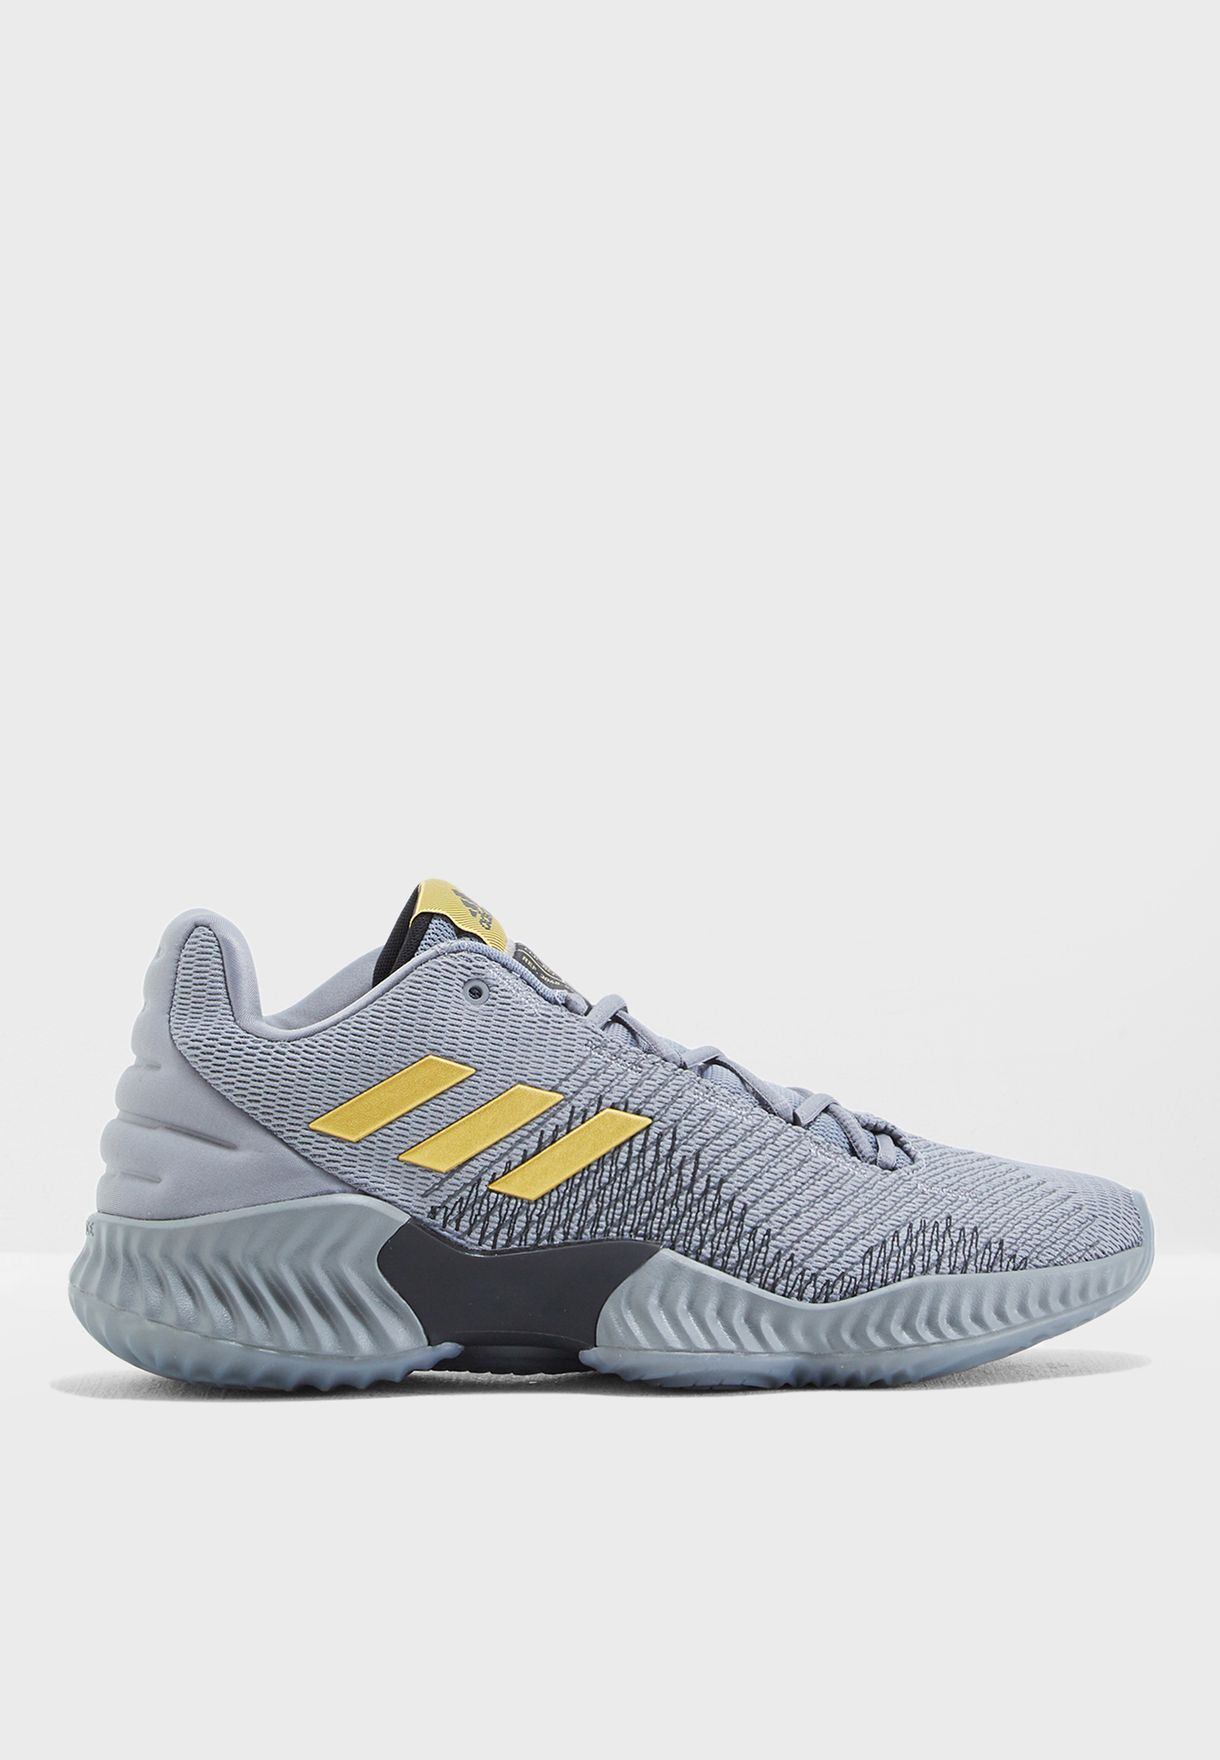 94984373a Shop adidas grey Pro Bounce 2018 Low AH2683 for Men in UAE ...